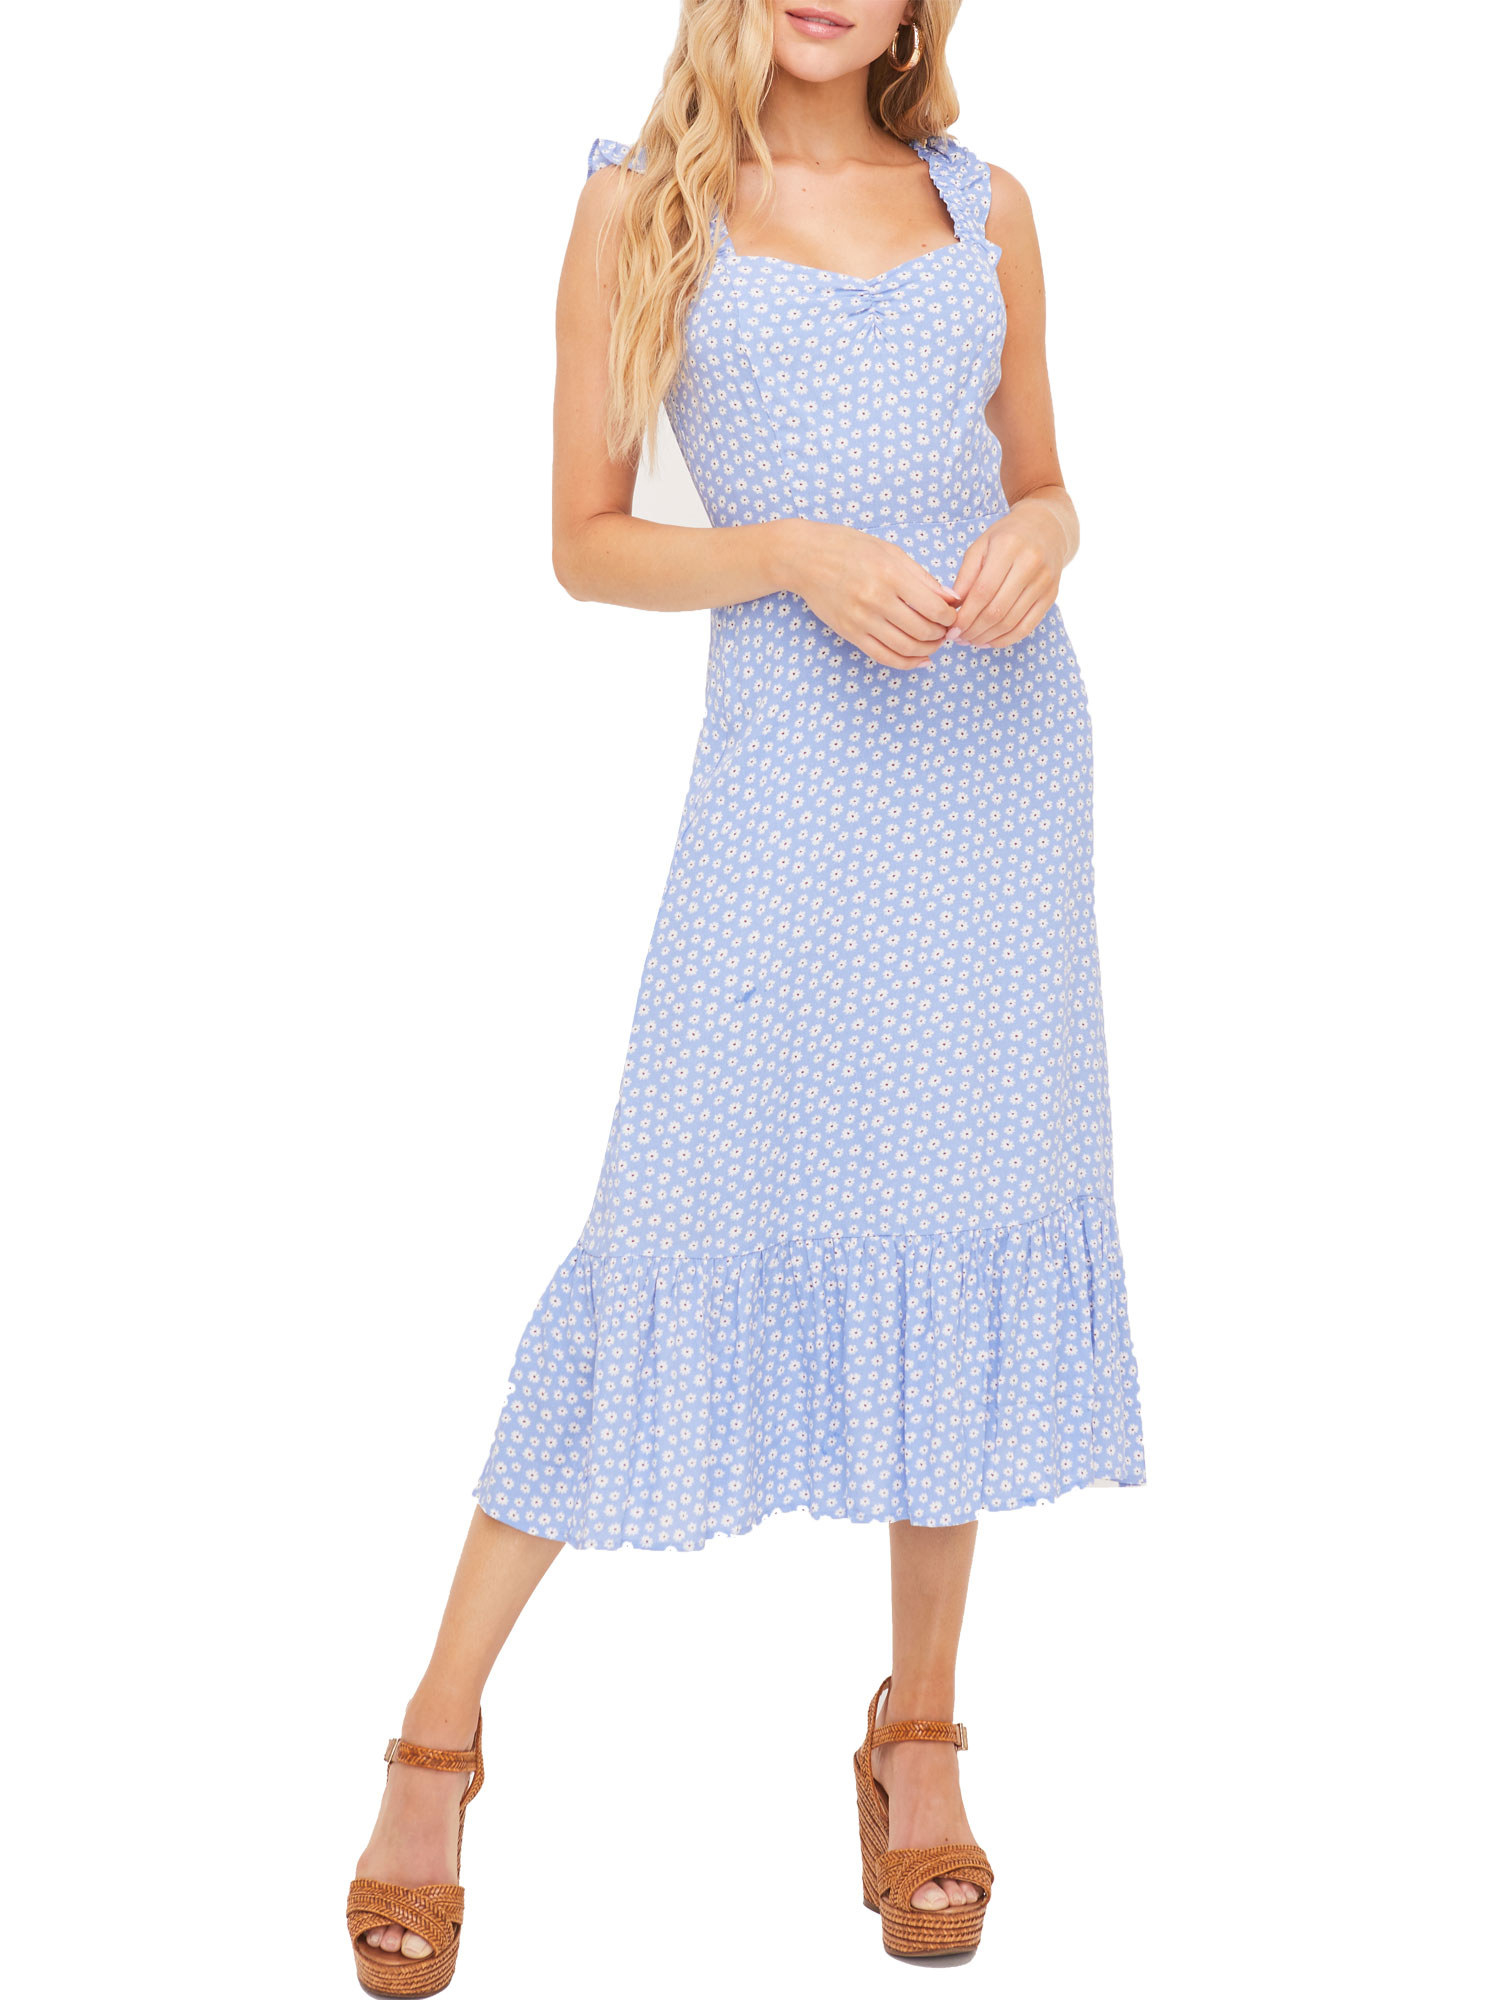 model in a dress with blue and white floral pattern